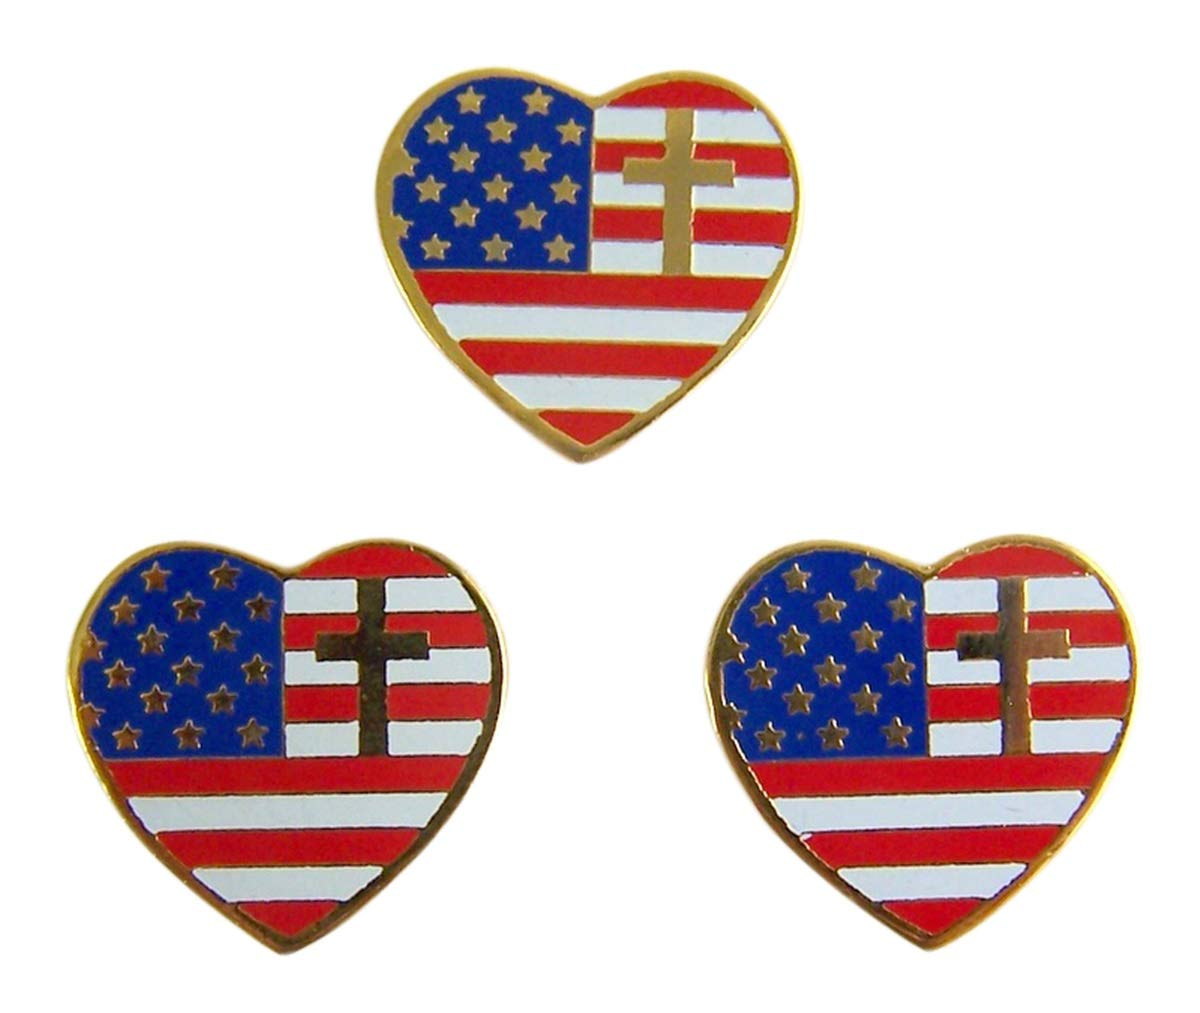 Religious Heart Shaped American Flag with Cross Lapel Pin, 3/4 Inch, Pack of 12 by Flag Lapel Pin (Image #2)